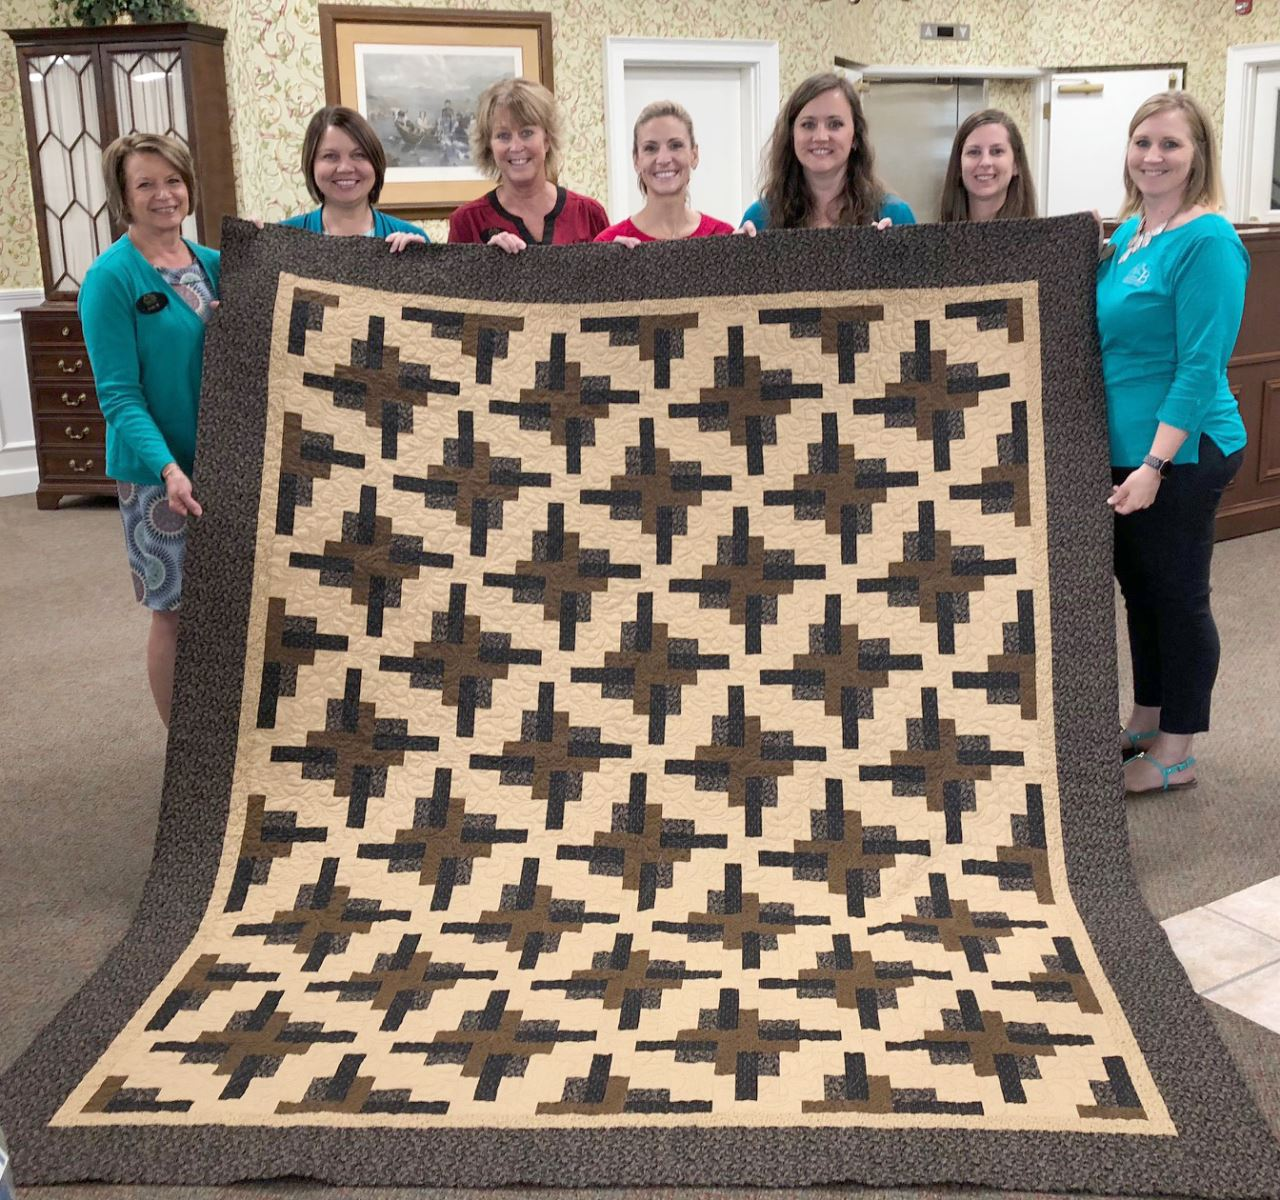 CUSB Bank donates quilt to RHSHC Annual Quilt Auction